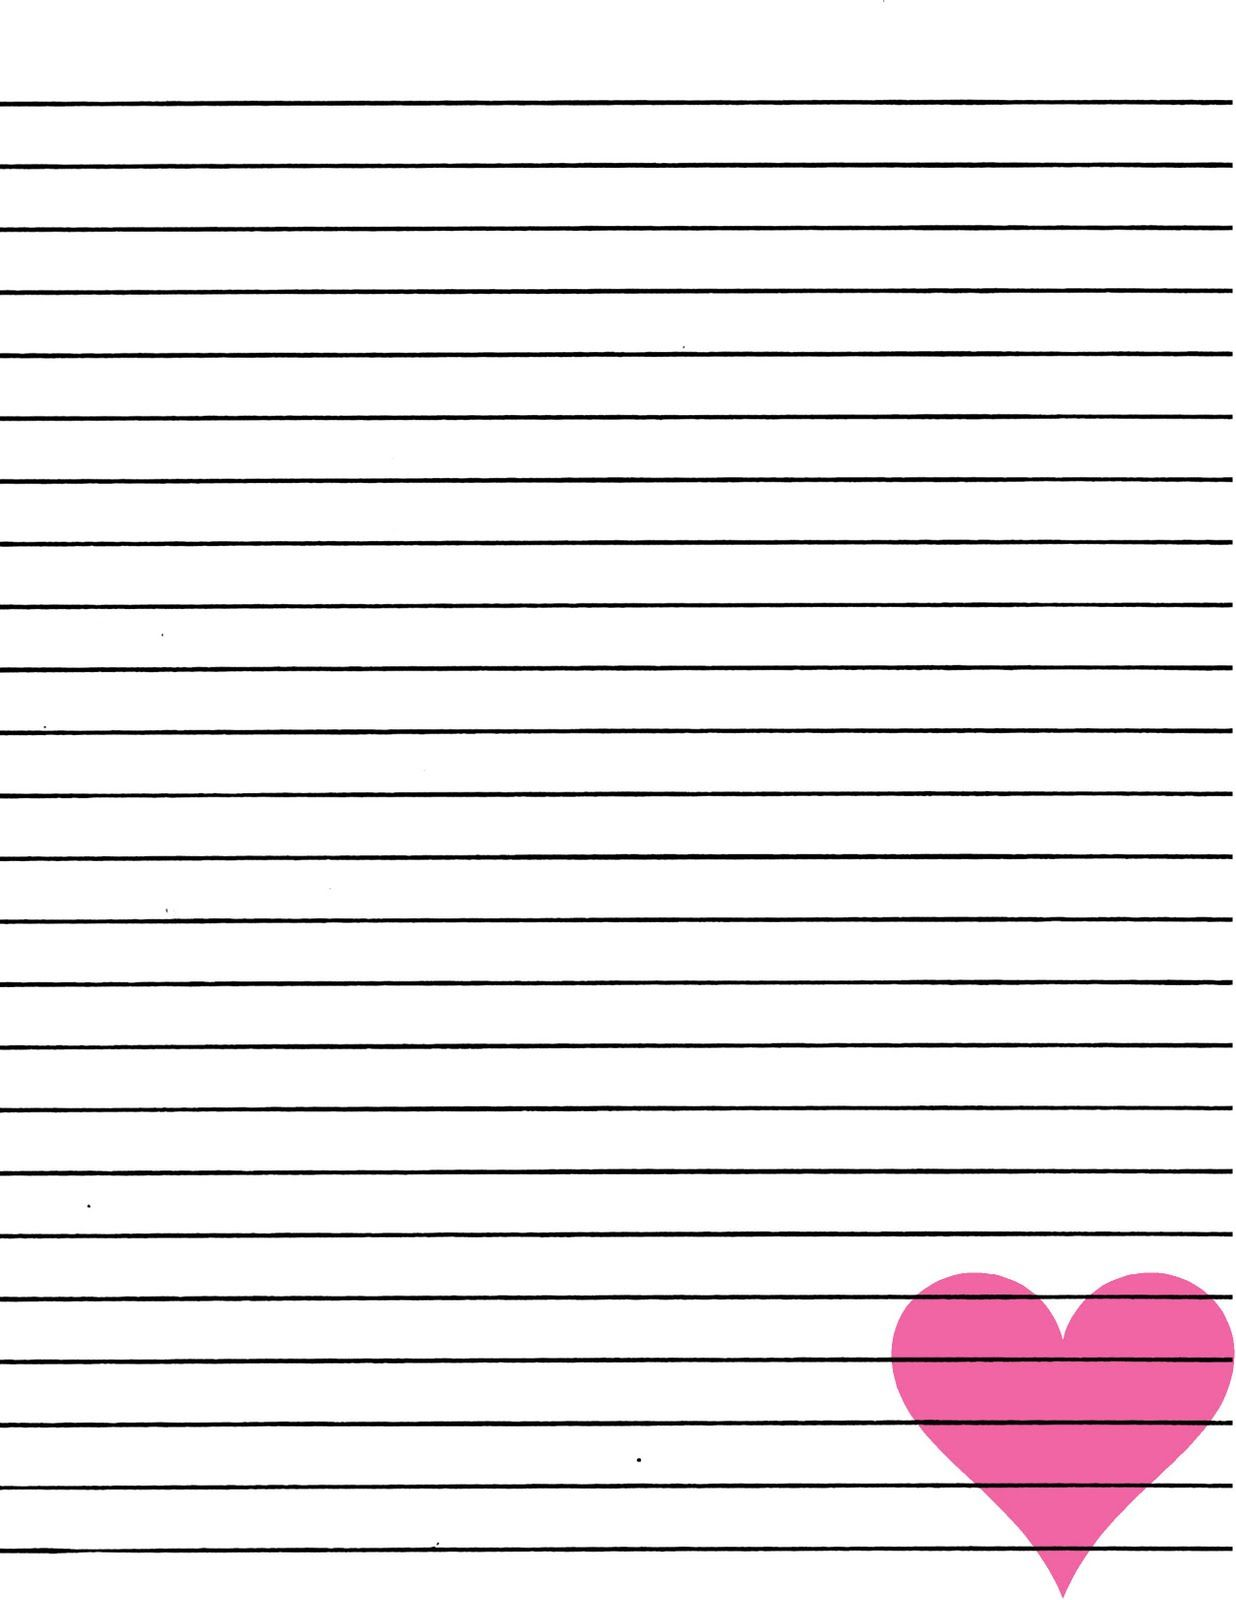 Just Smashing Paper FREEBIE Pink heart lined paper printable – Lined Paper Printables